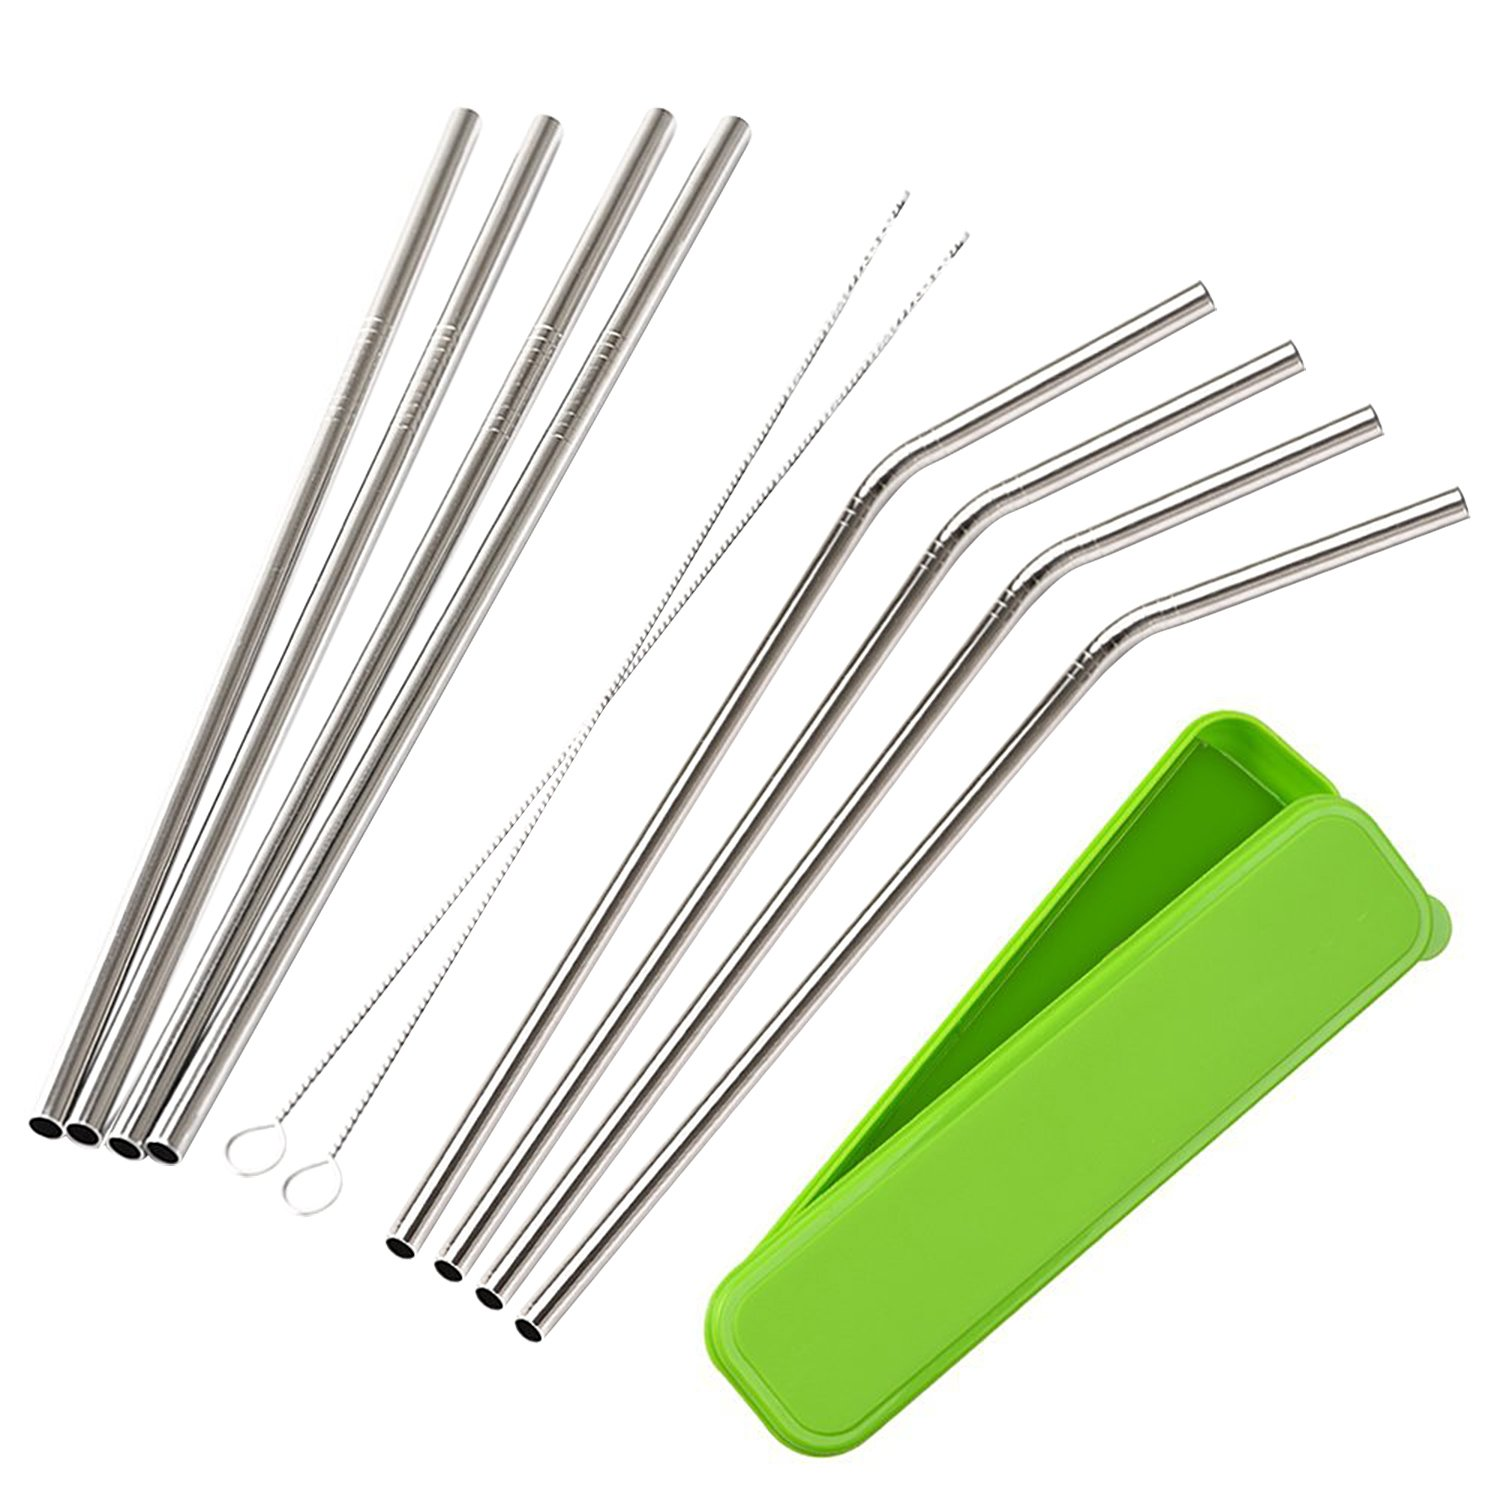 Mudder 8 Pack Stainless Steel Drinking Straws with Cleaning Brushes and Portable Storage Box COMINHKPR105612